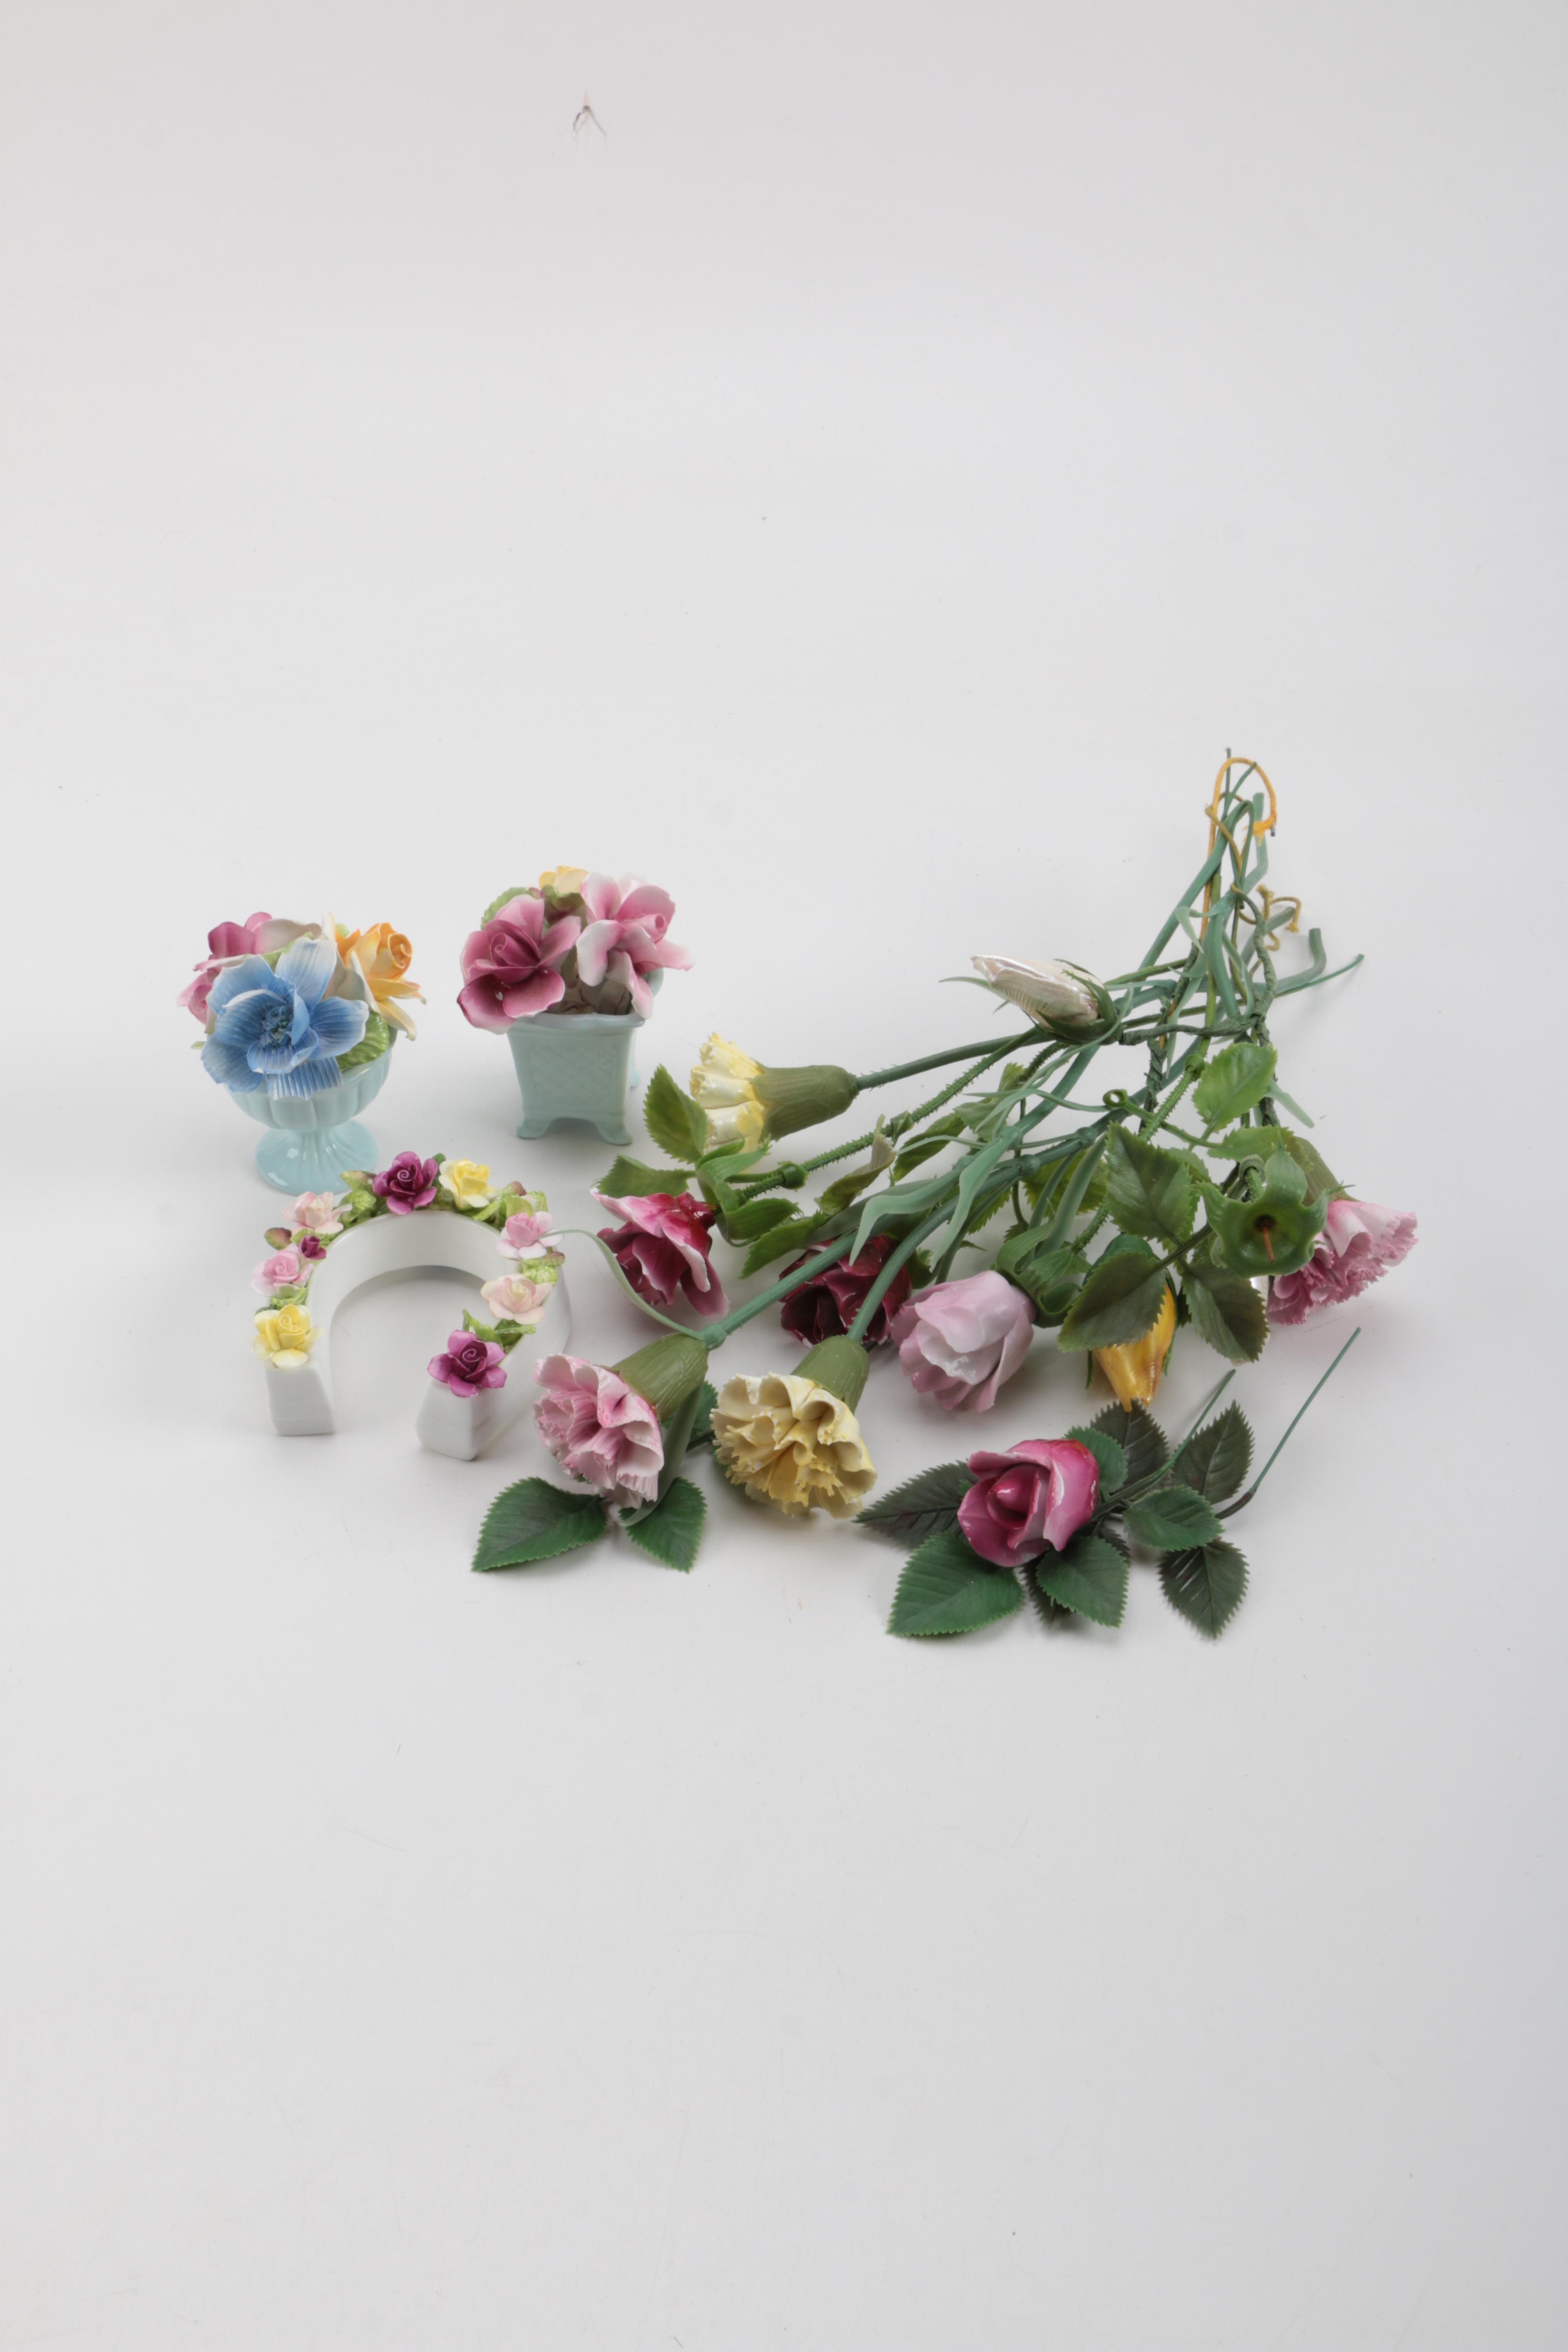 Variety of Artificial Flower Decor